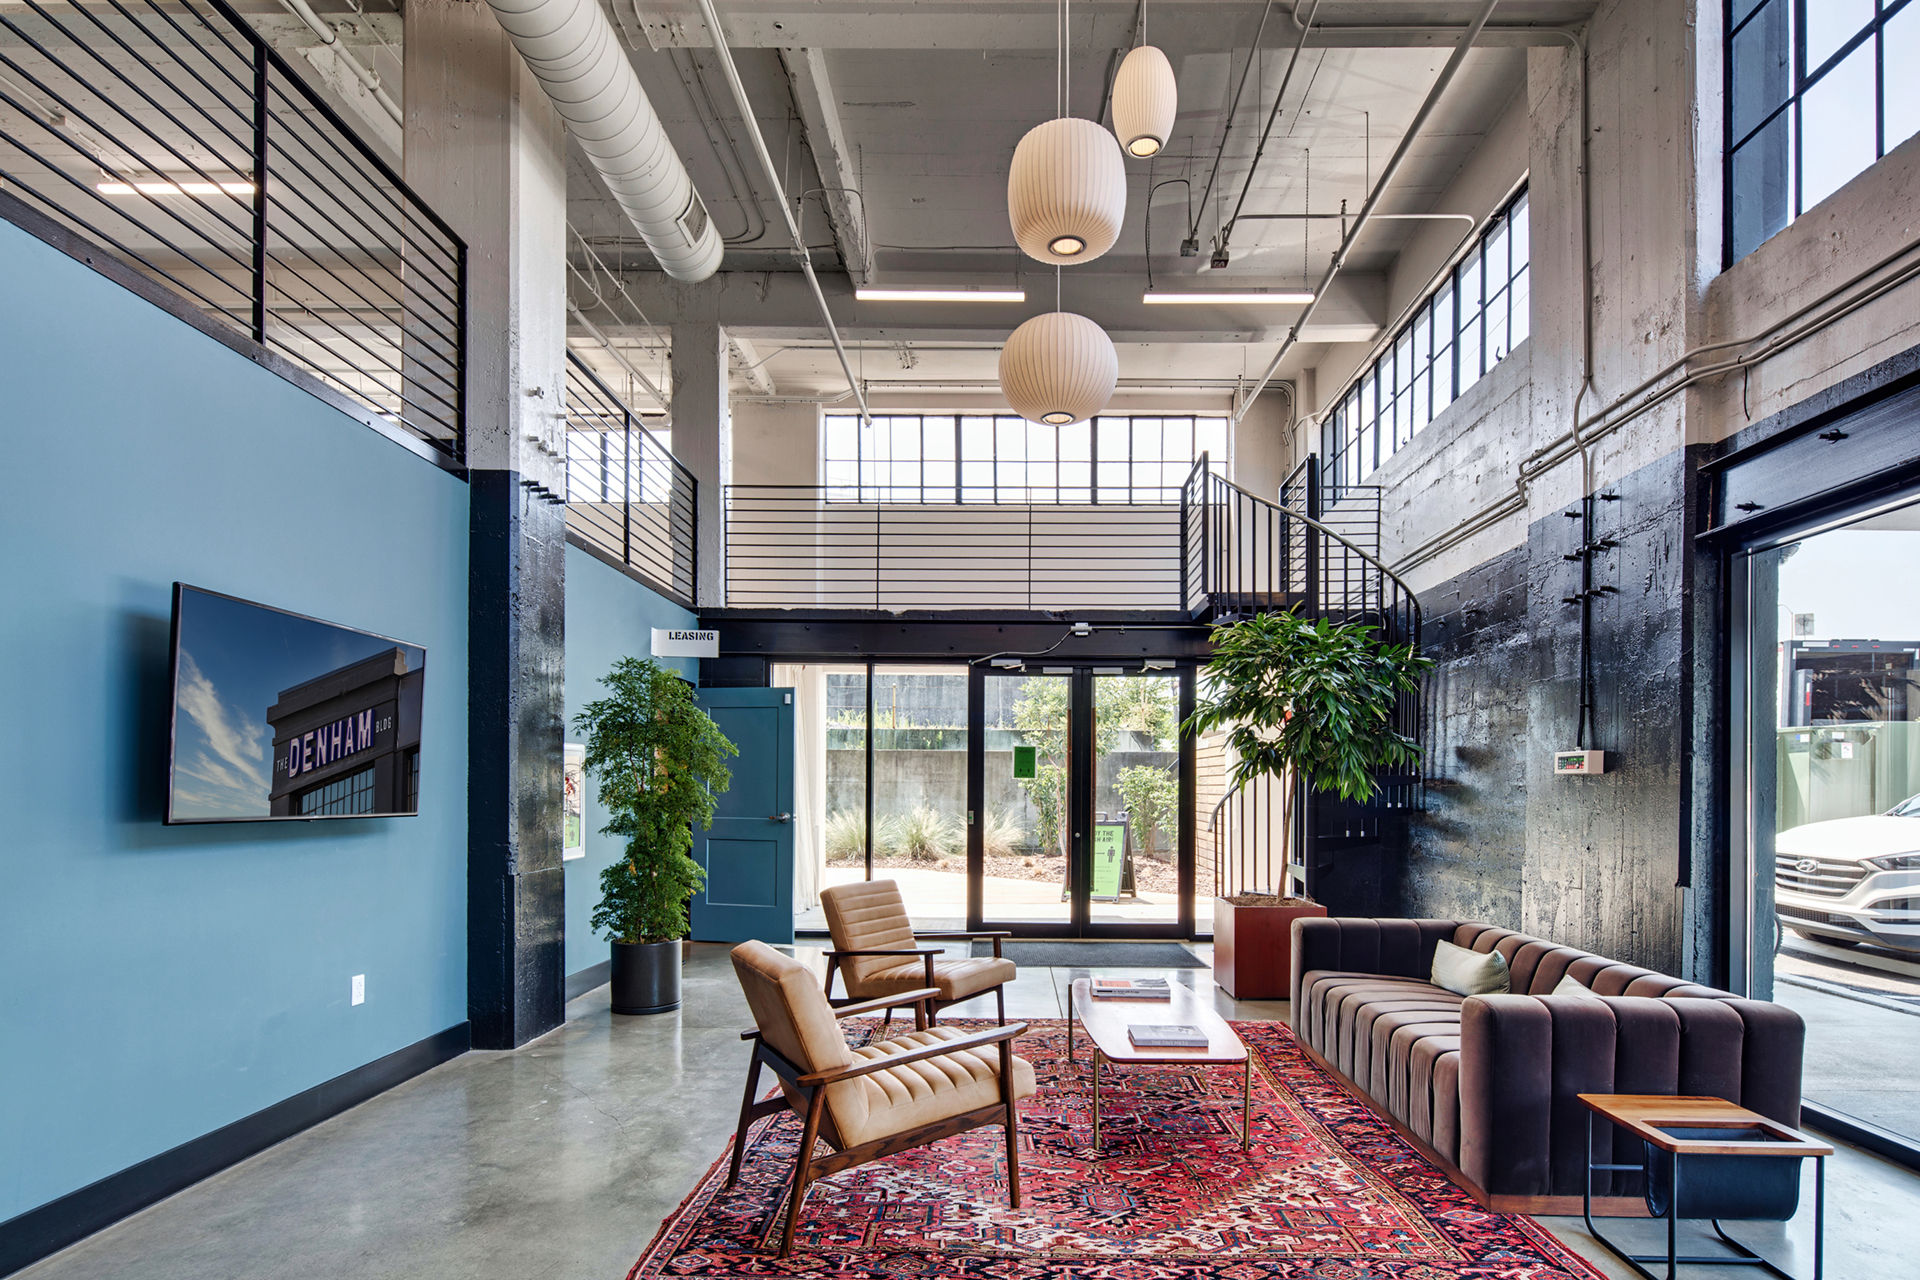 Large seating area with two chairs, sofa, indoor plants, and spiral staircase at The Denham Building loft apartments for rent